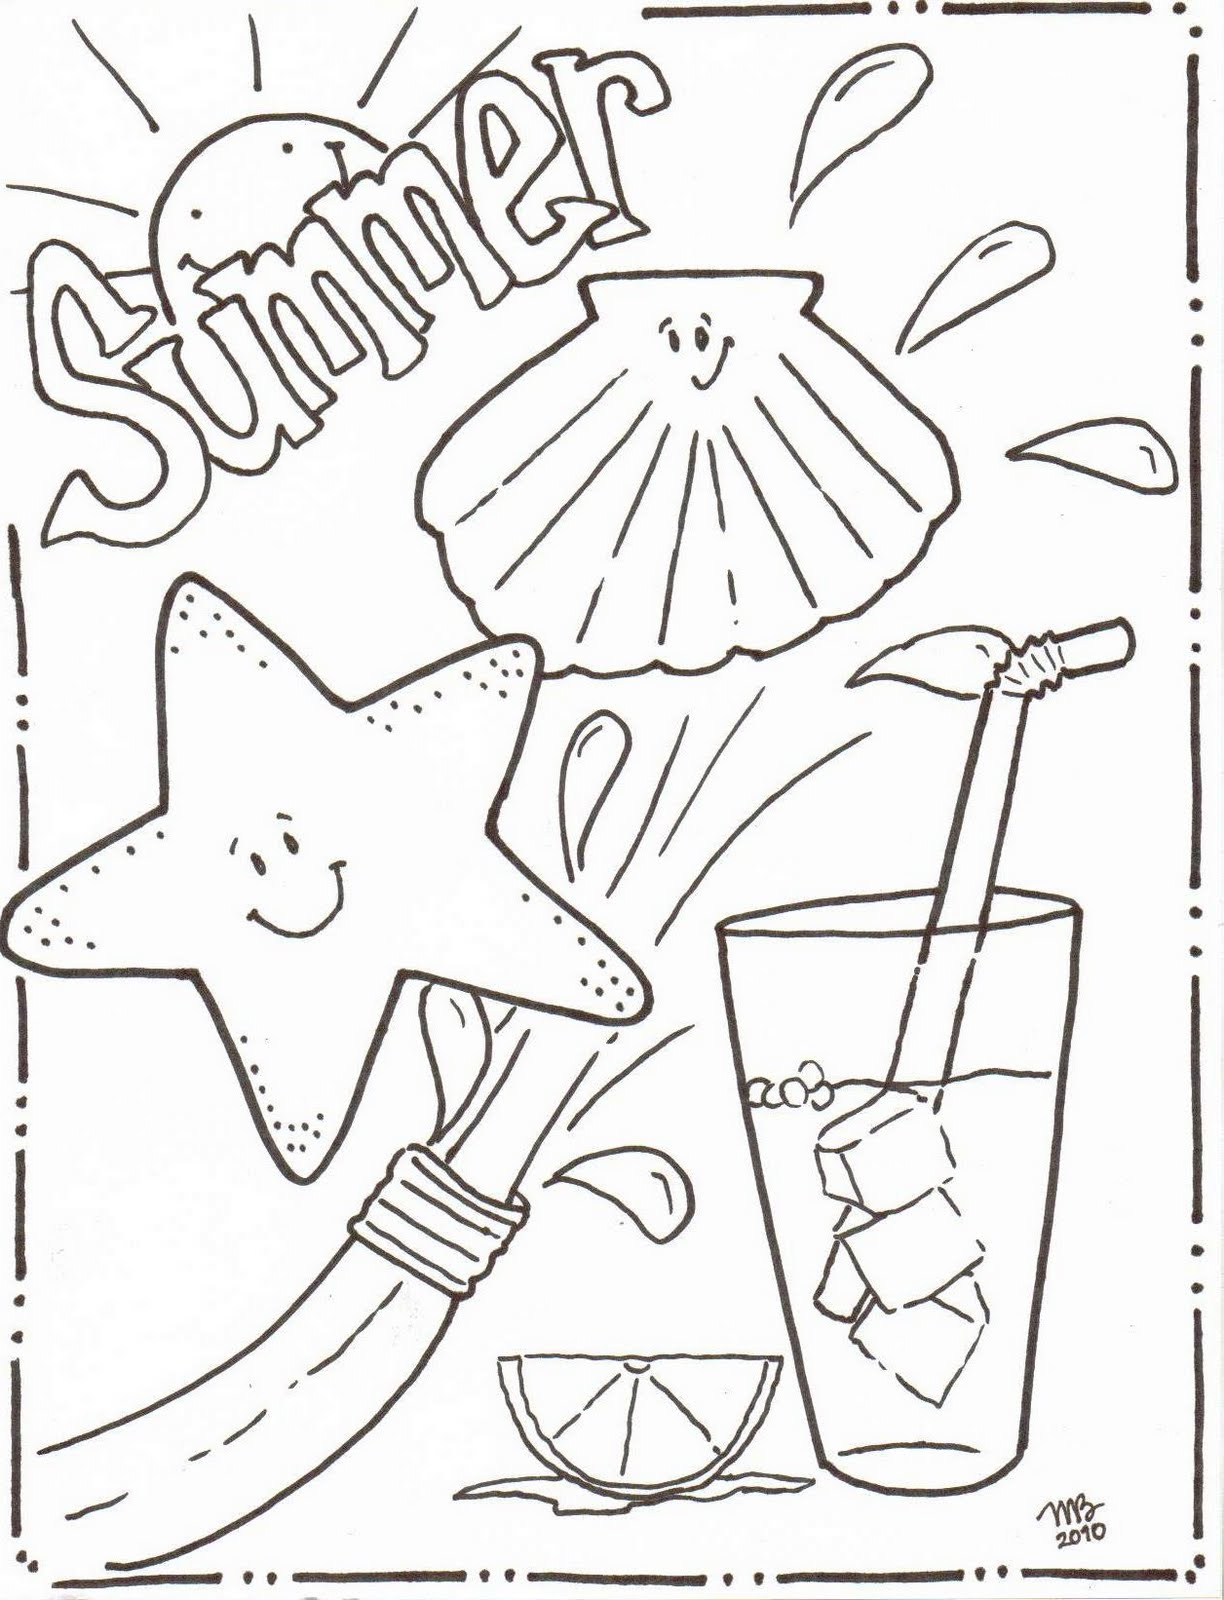 Michelle Kemper Brownlow Summer Coloring Pages Original Free Printable Summer Coloring Pages